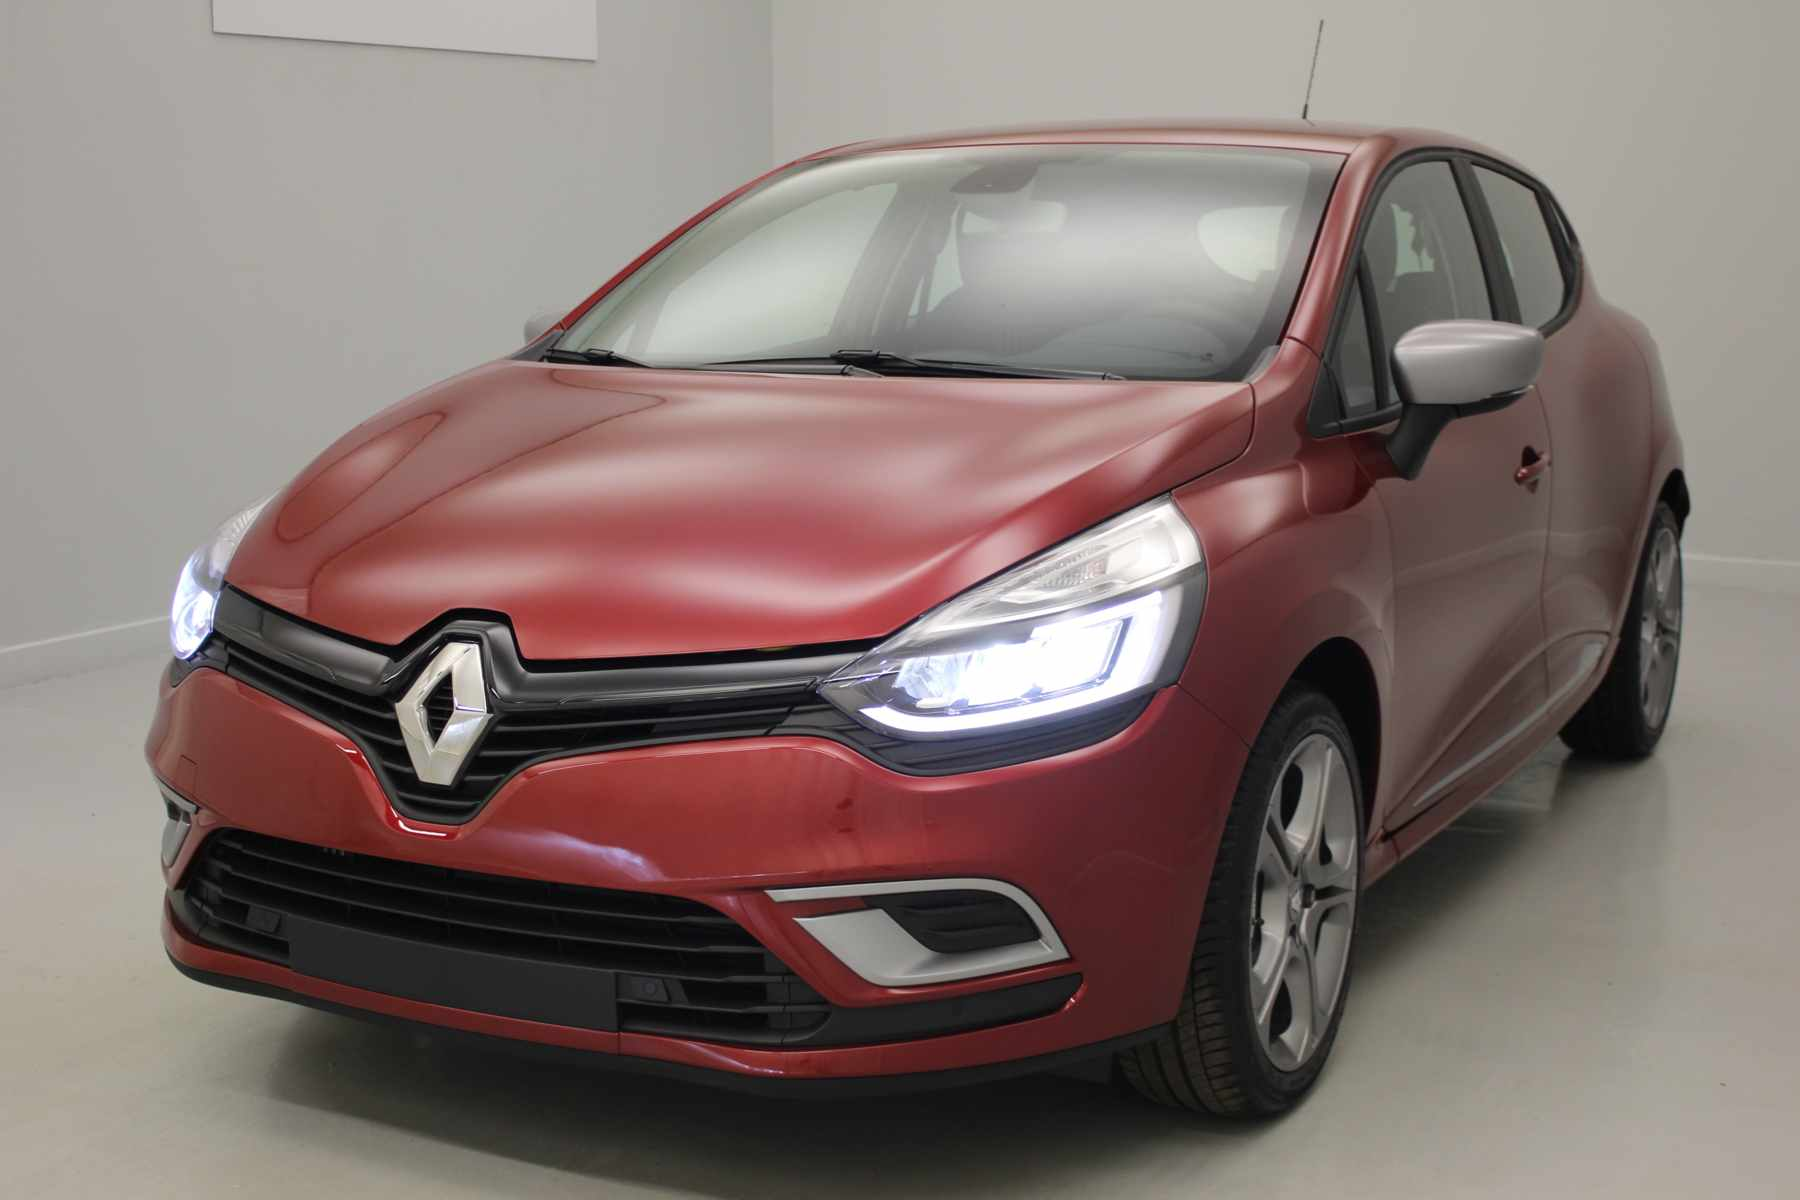 RENAULT Clio IV Nouvelle TCe 90 Energy Intens Rouge Intense + Full Pack GT-Line + Roue de secours + Pack Techno avec options